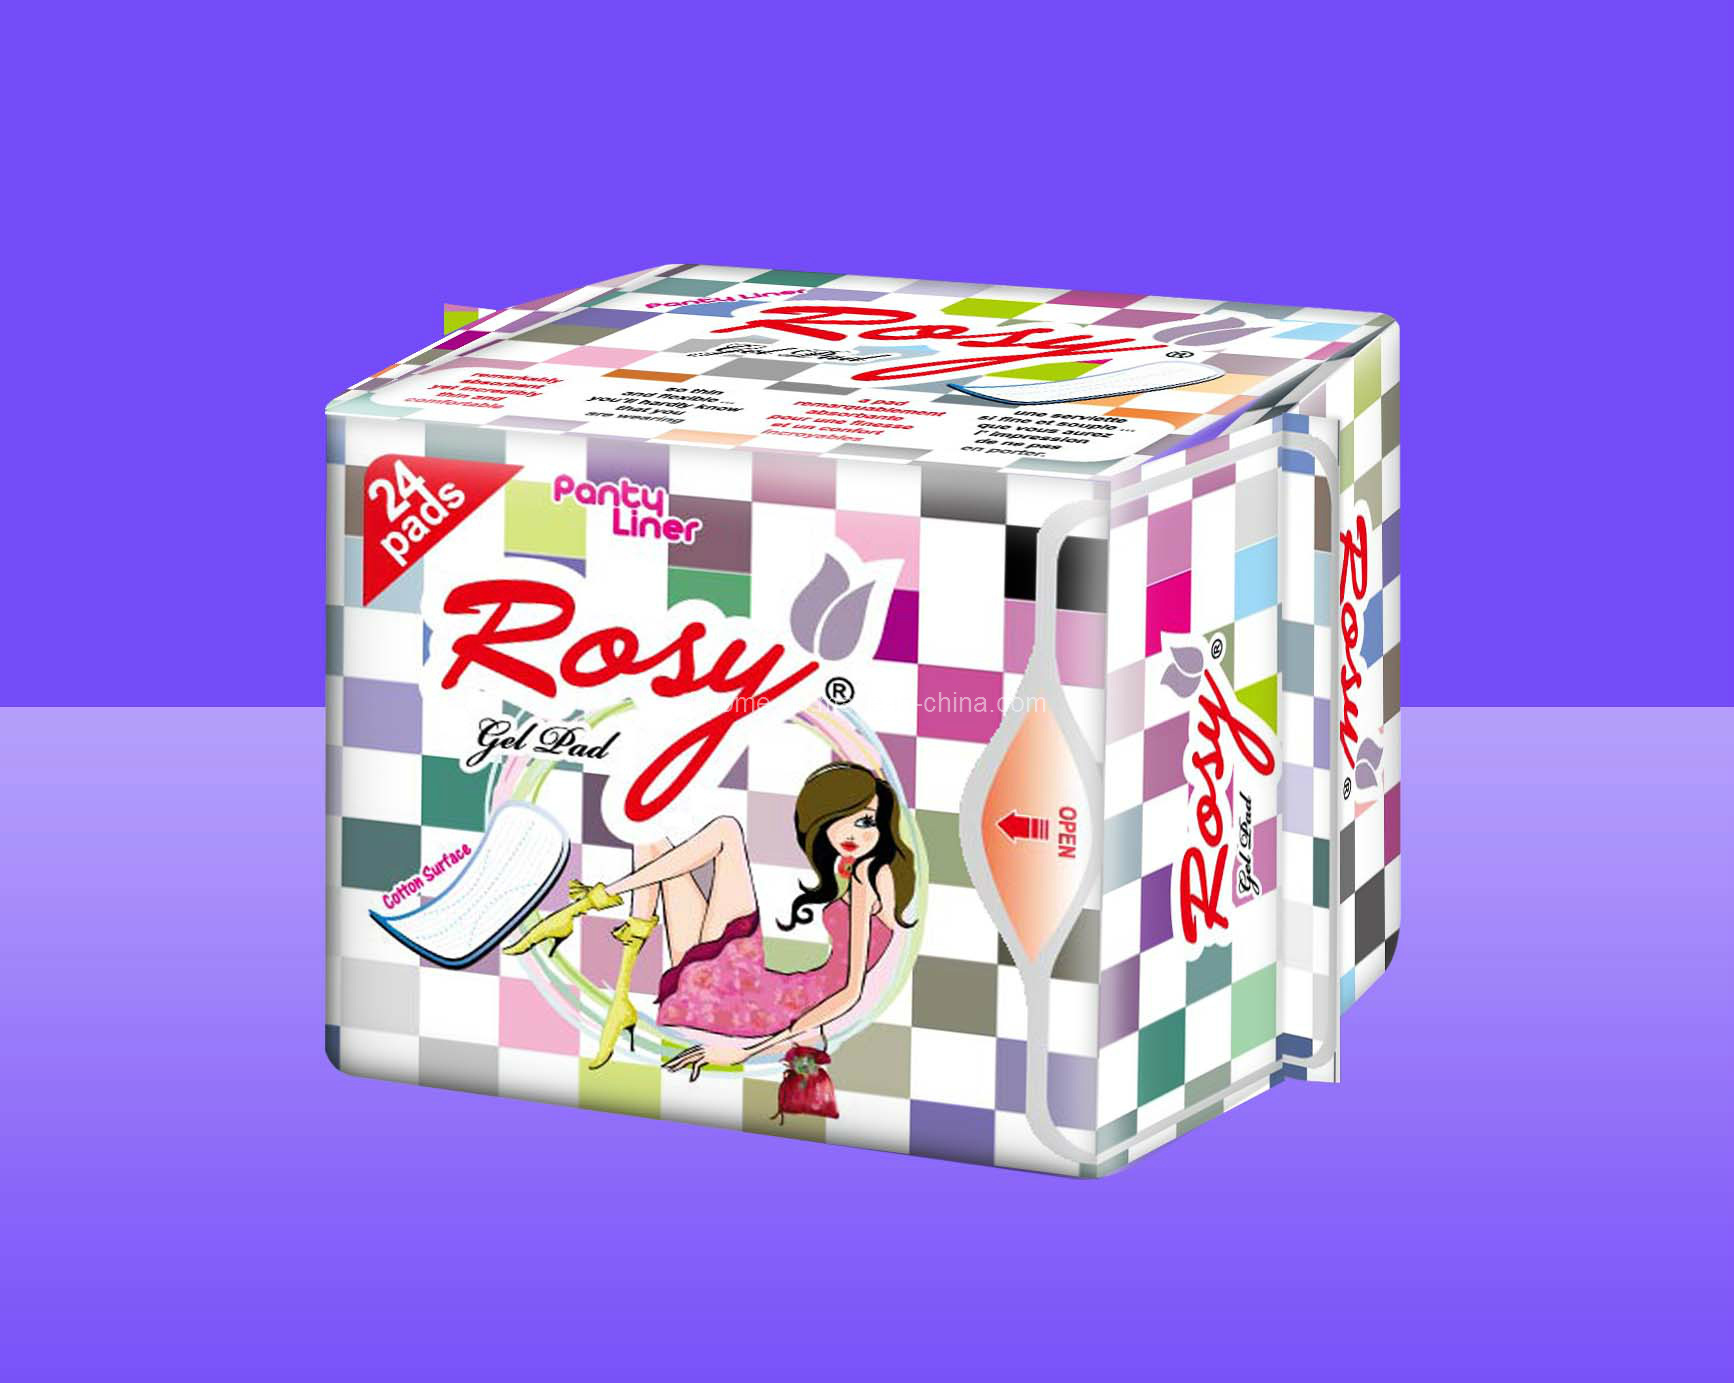 Reathable Sanitary Pad / Panty Liners Rosy Panty Liner